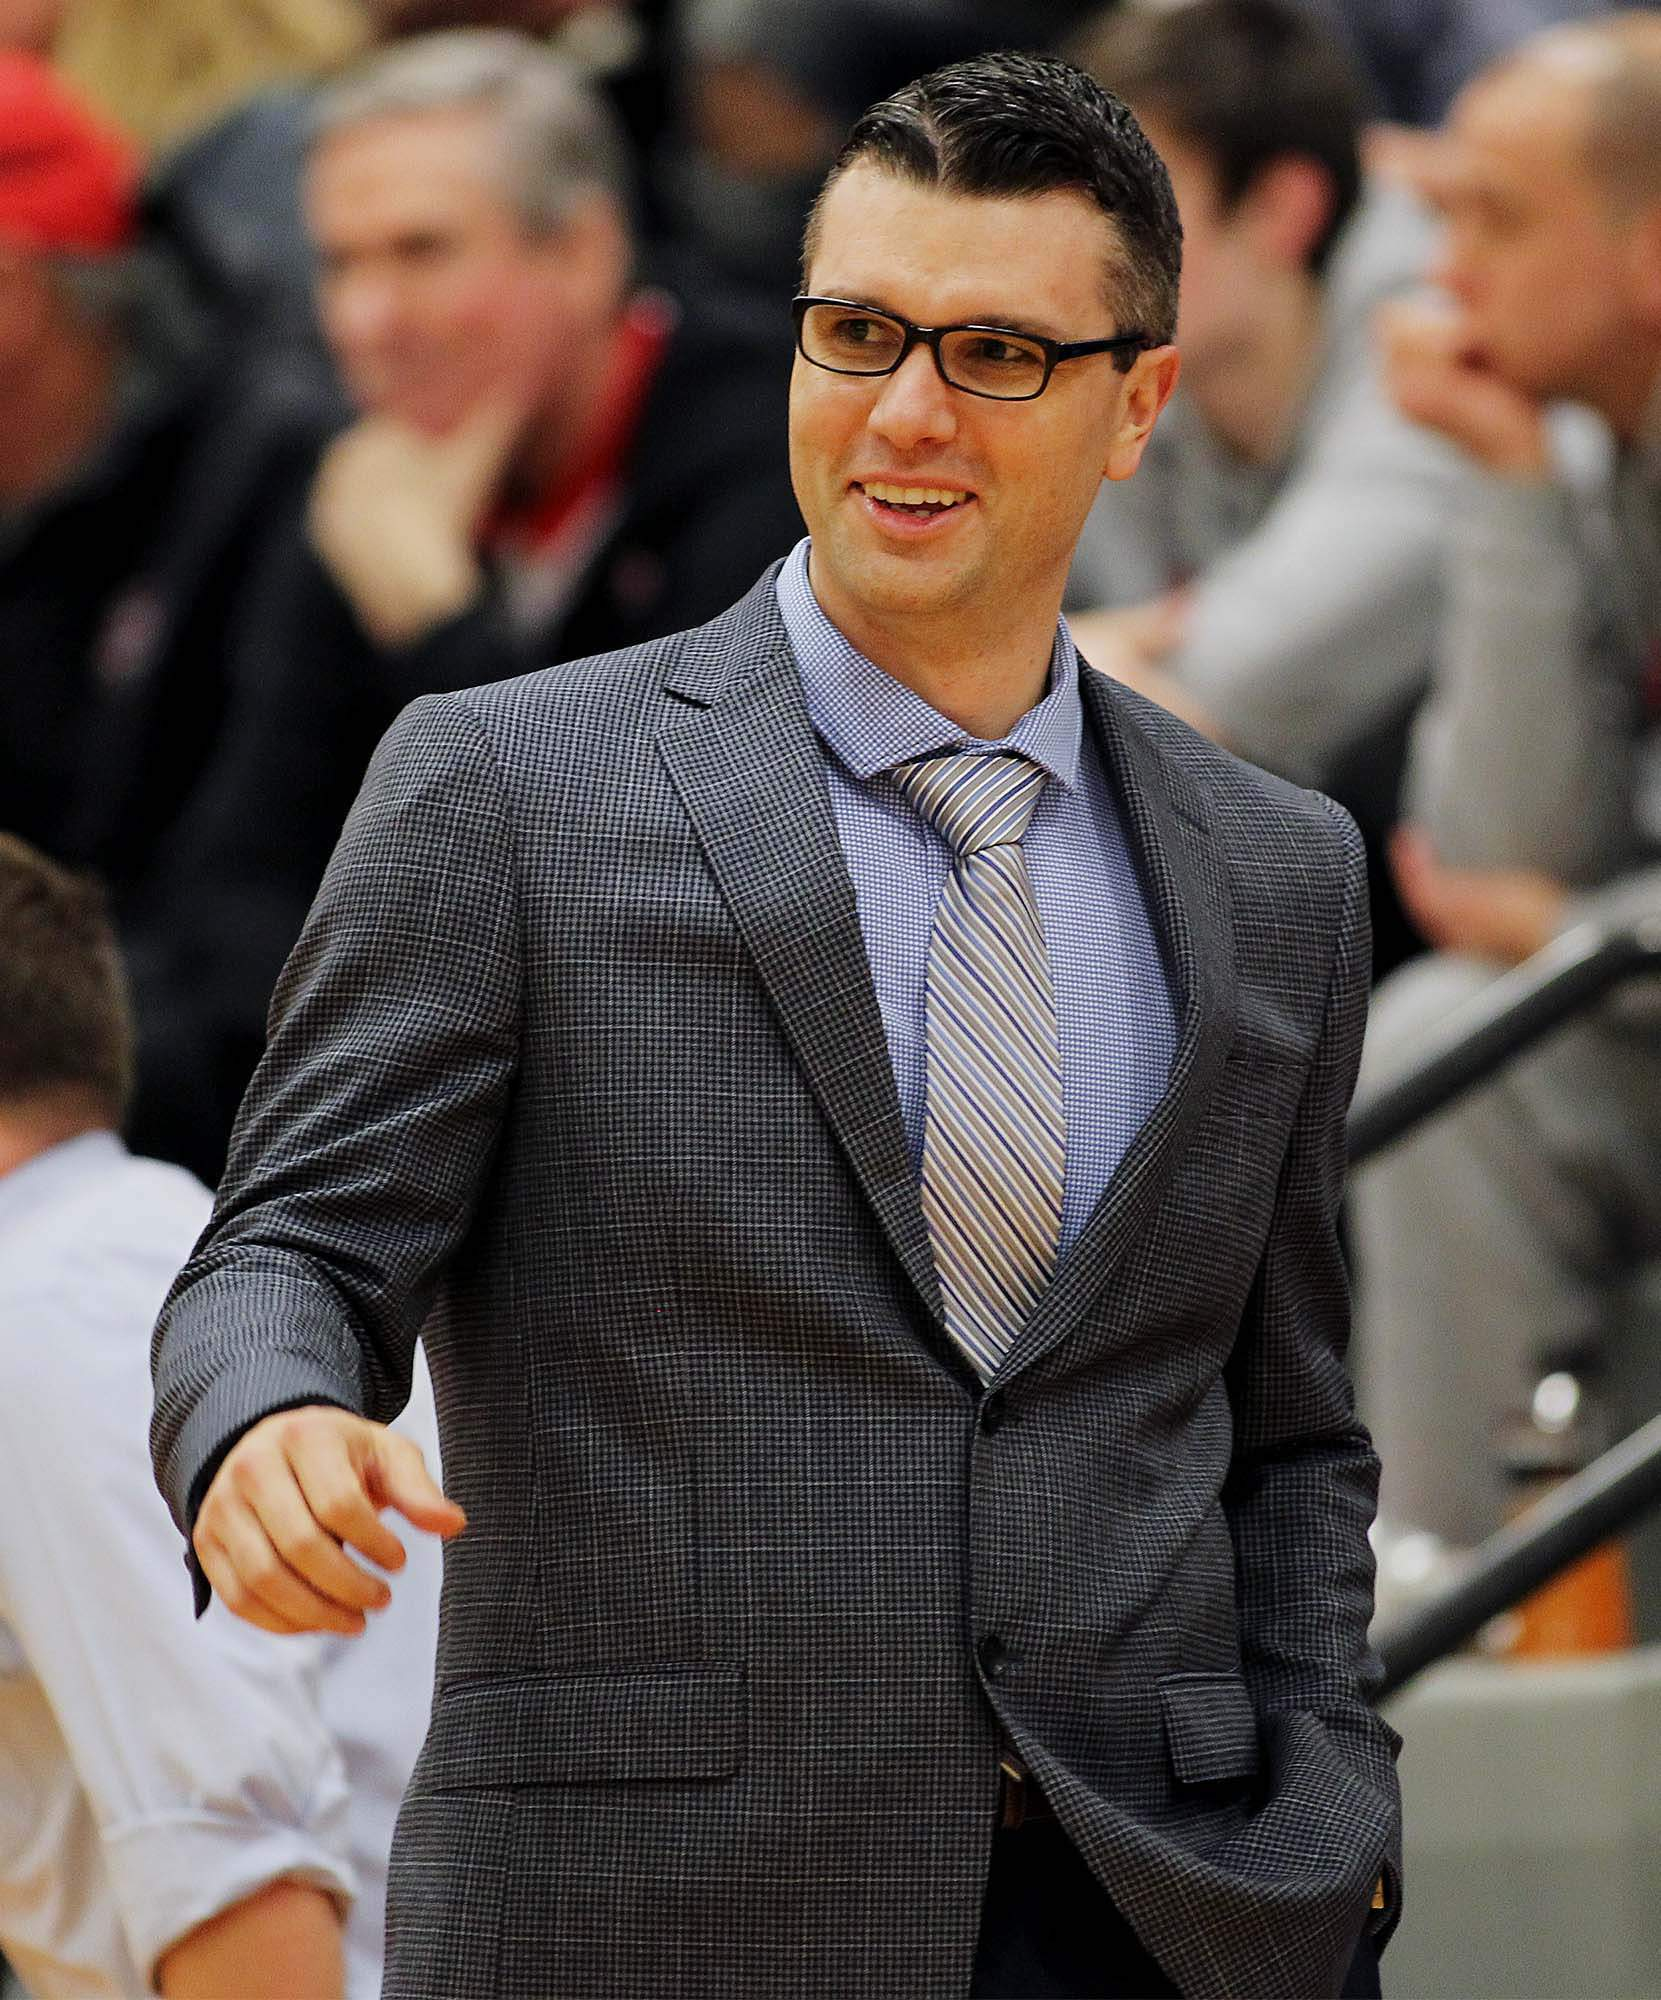 Harrisburg native and John A. Logan College men's basketball coach Kyle Smithpeters picked up his third straight Great River Athletic Conference Coach Of The Year honors earlier this week. The seventh-year head coach of the Vols has won the award six times.